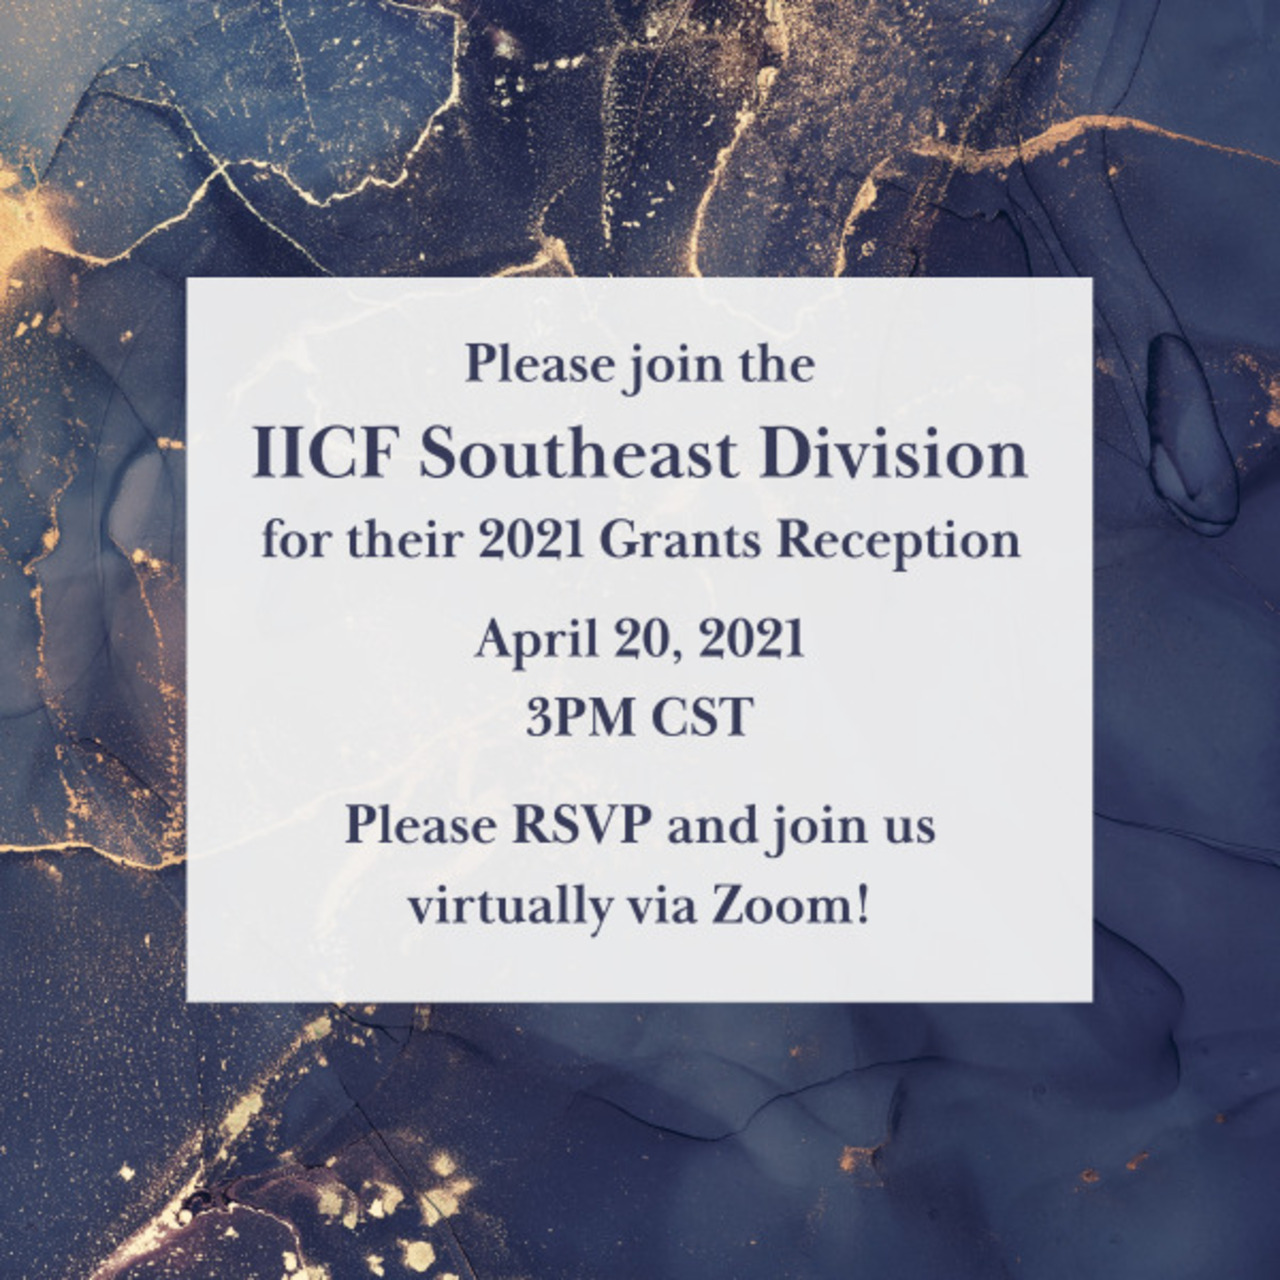 IICF Southeast Division 2021 Grants Reception